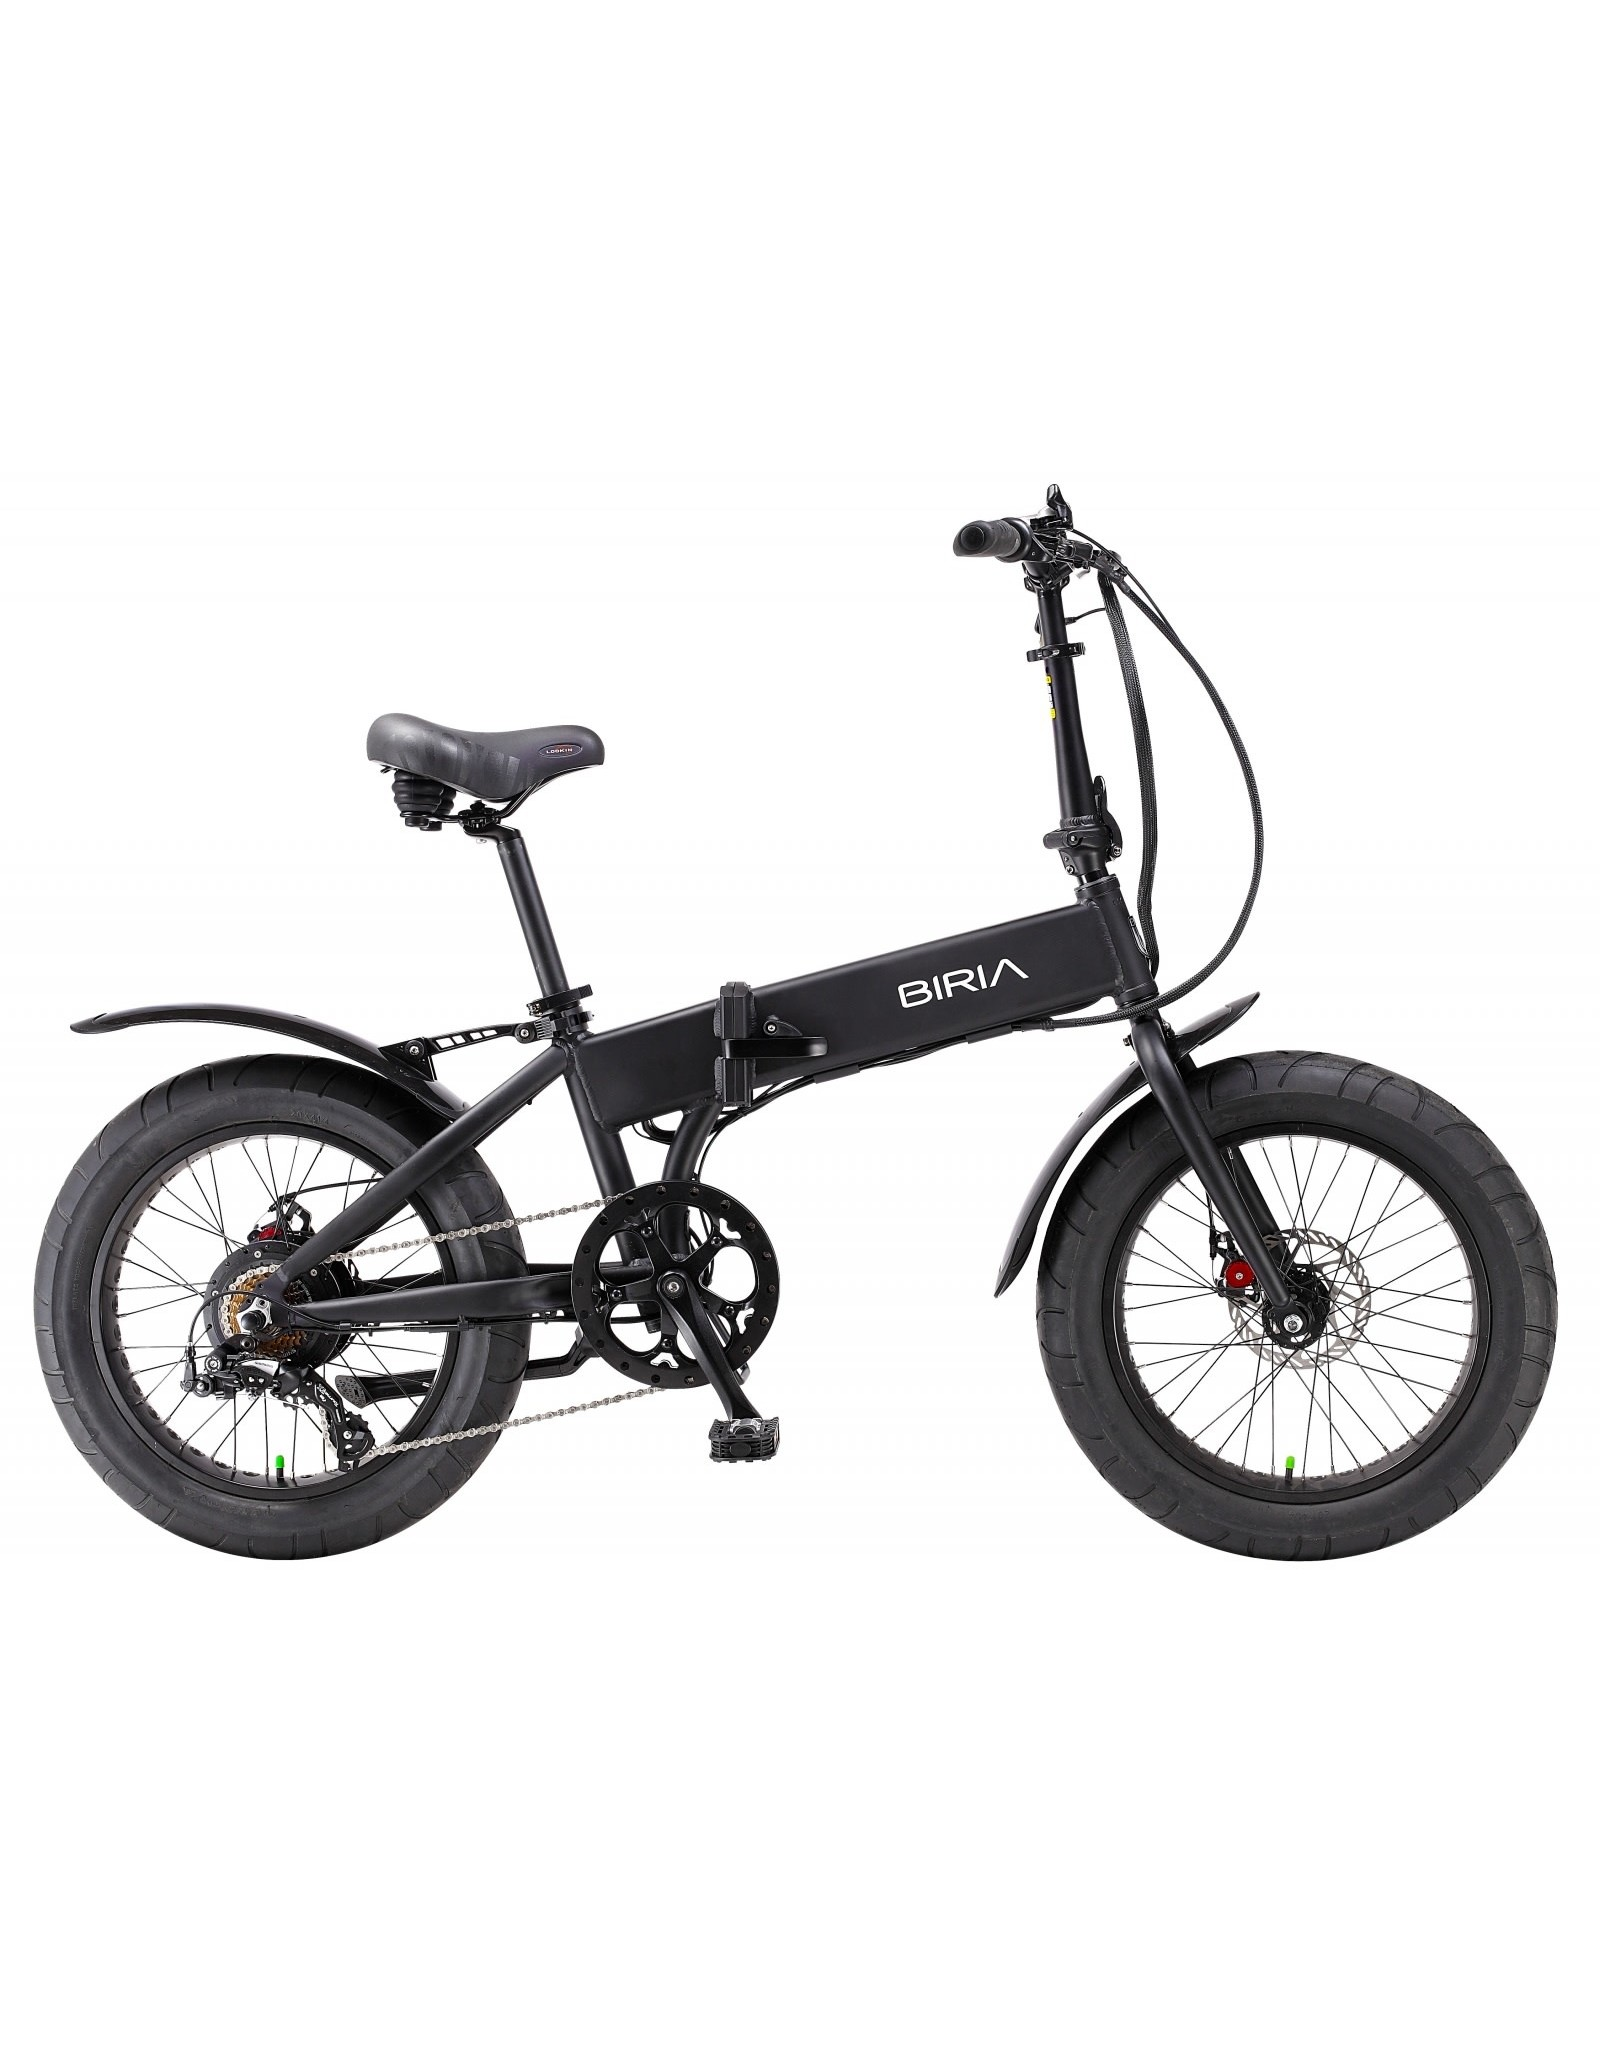 Biria Bicycles Biria Electric Folding S2